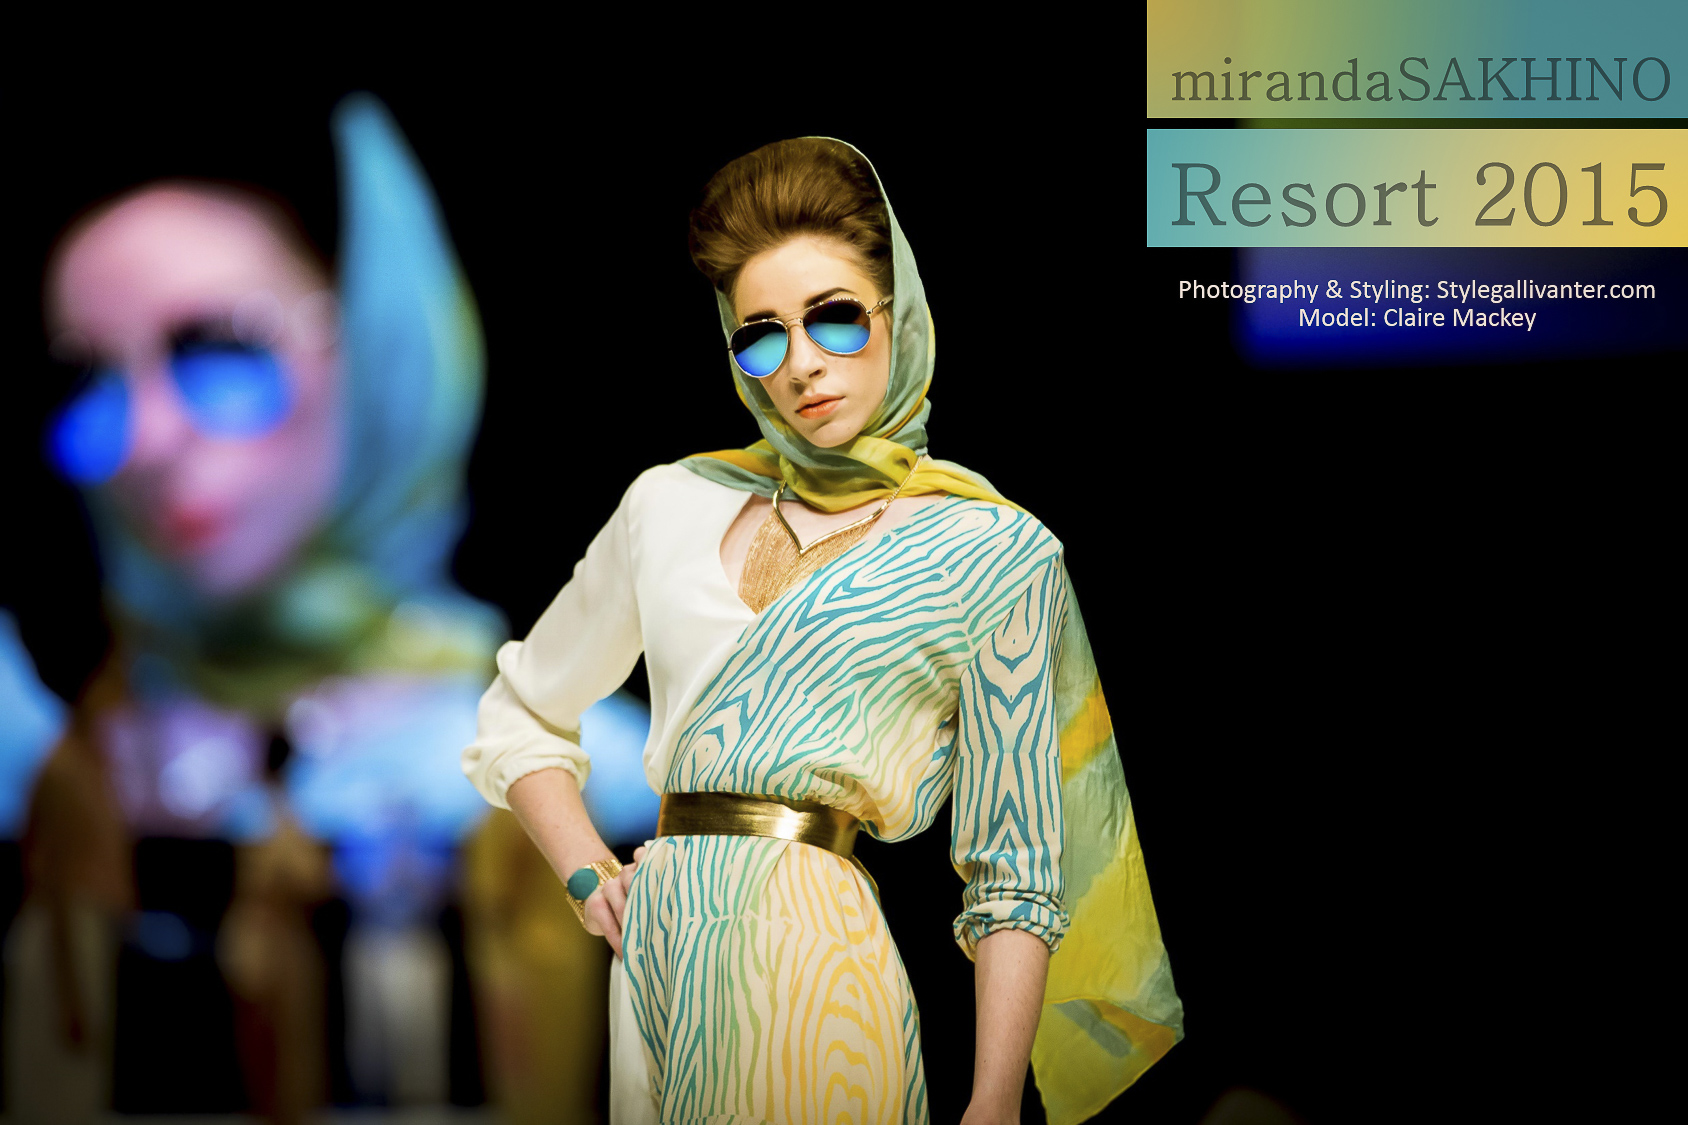 mirandaSAKHINO-copyright-2015_not-to-be-used-without-permission_mirandasakhino-runway-2015_mirandasakhino-fashfest-miranda-sakhino-resort-collection_miranda-sakhino-fashfest-34